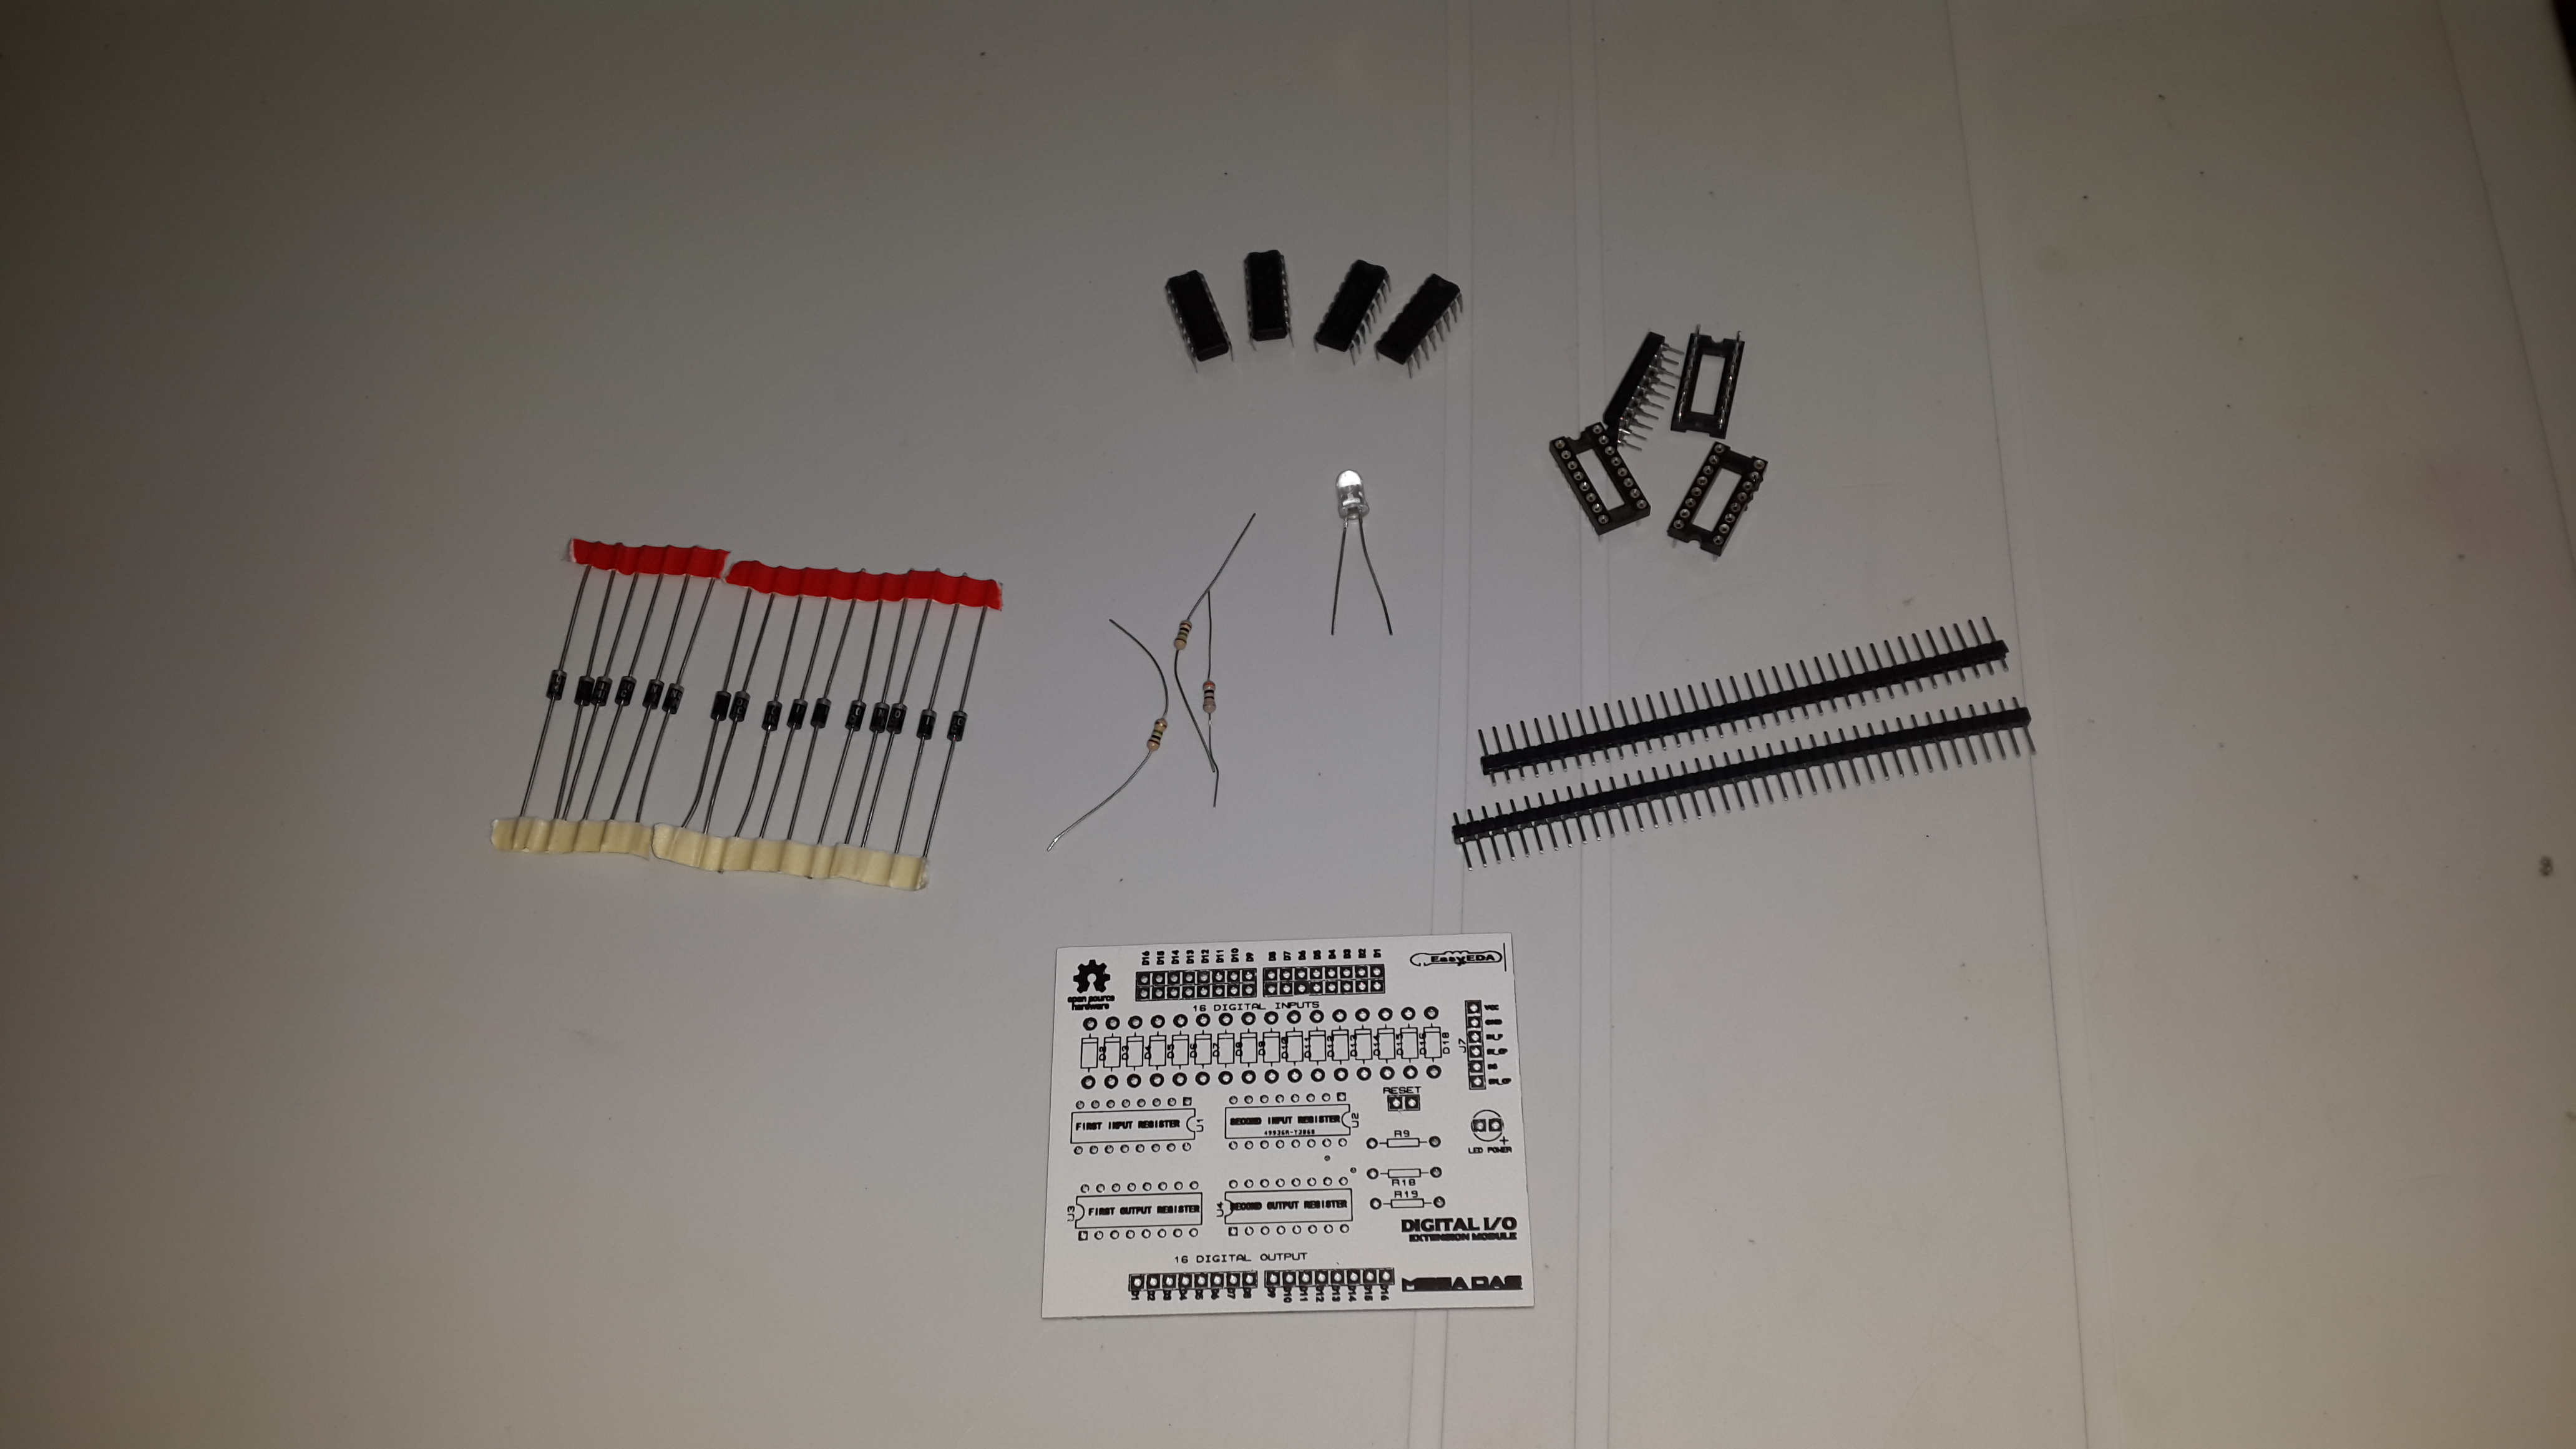 Picture of What You Need to Make This Project